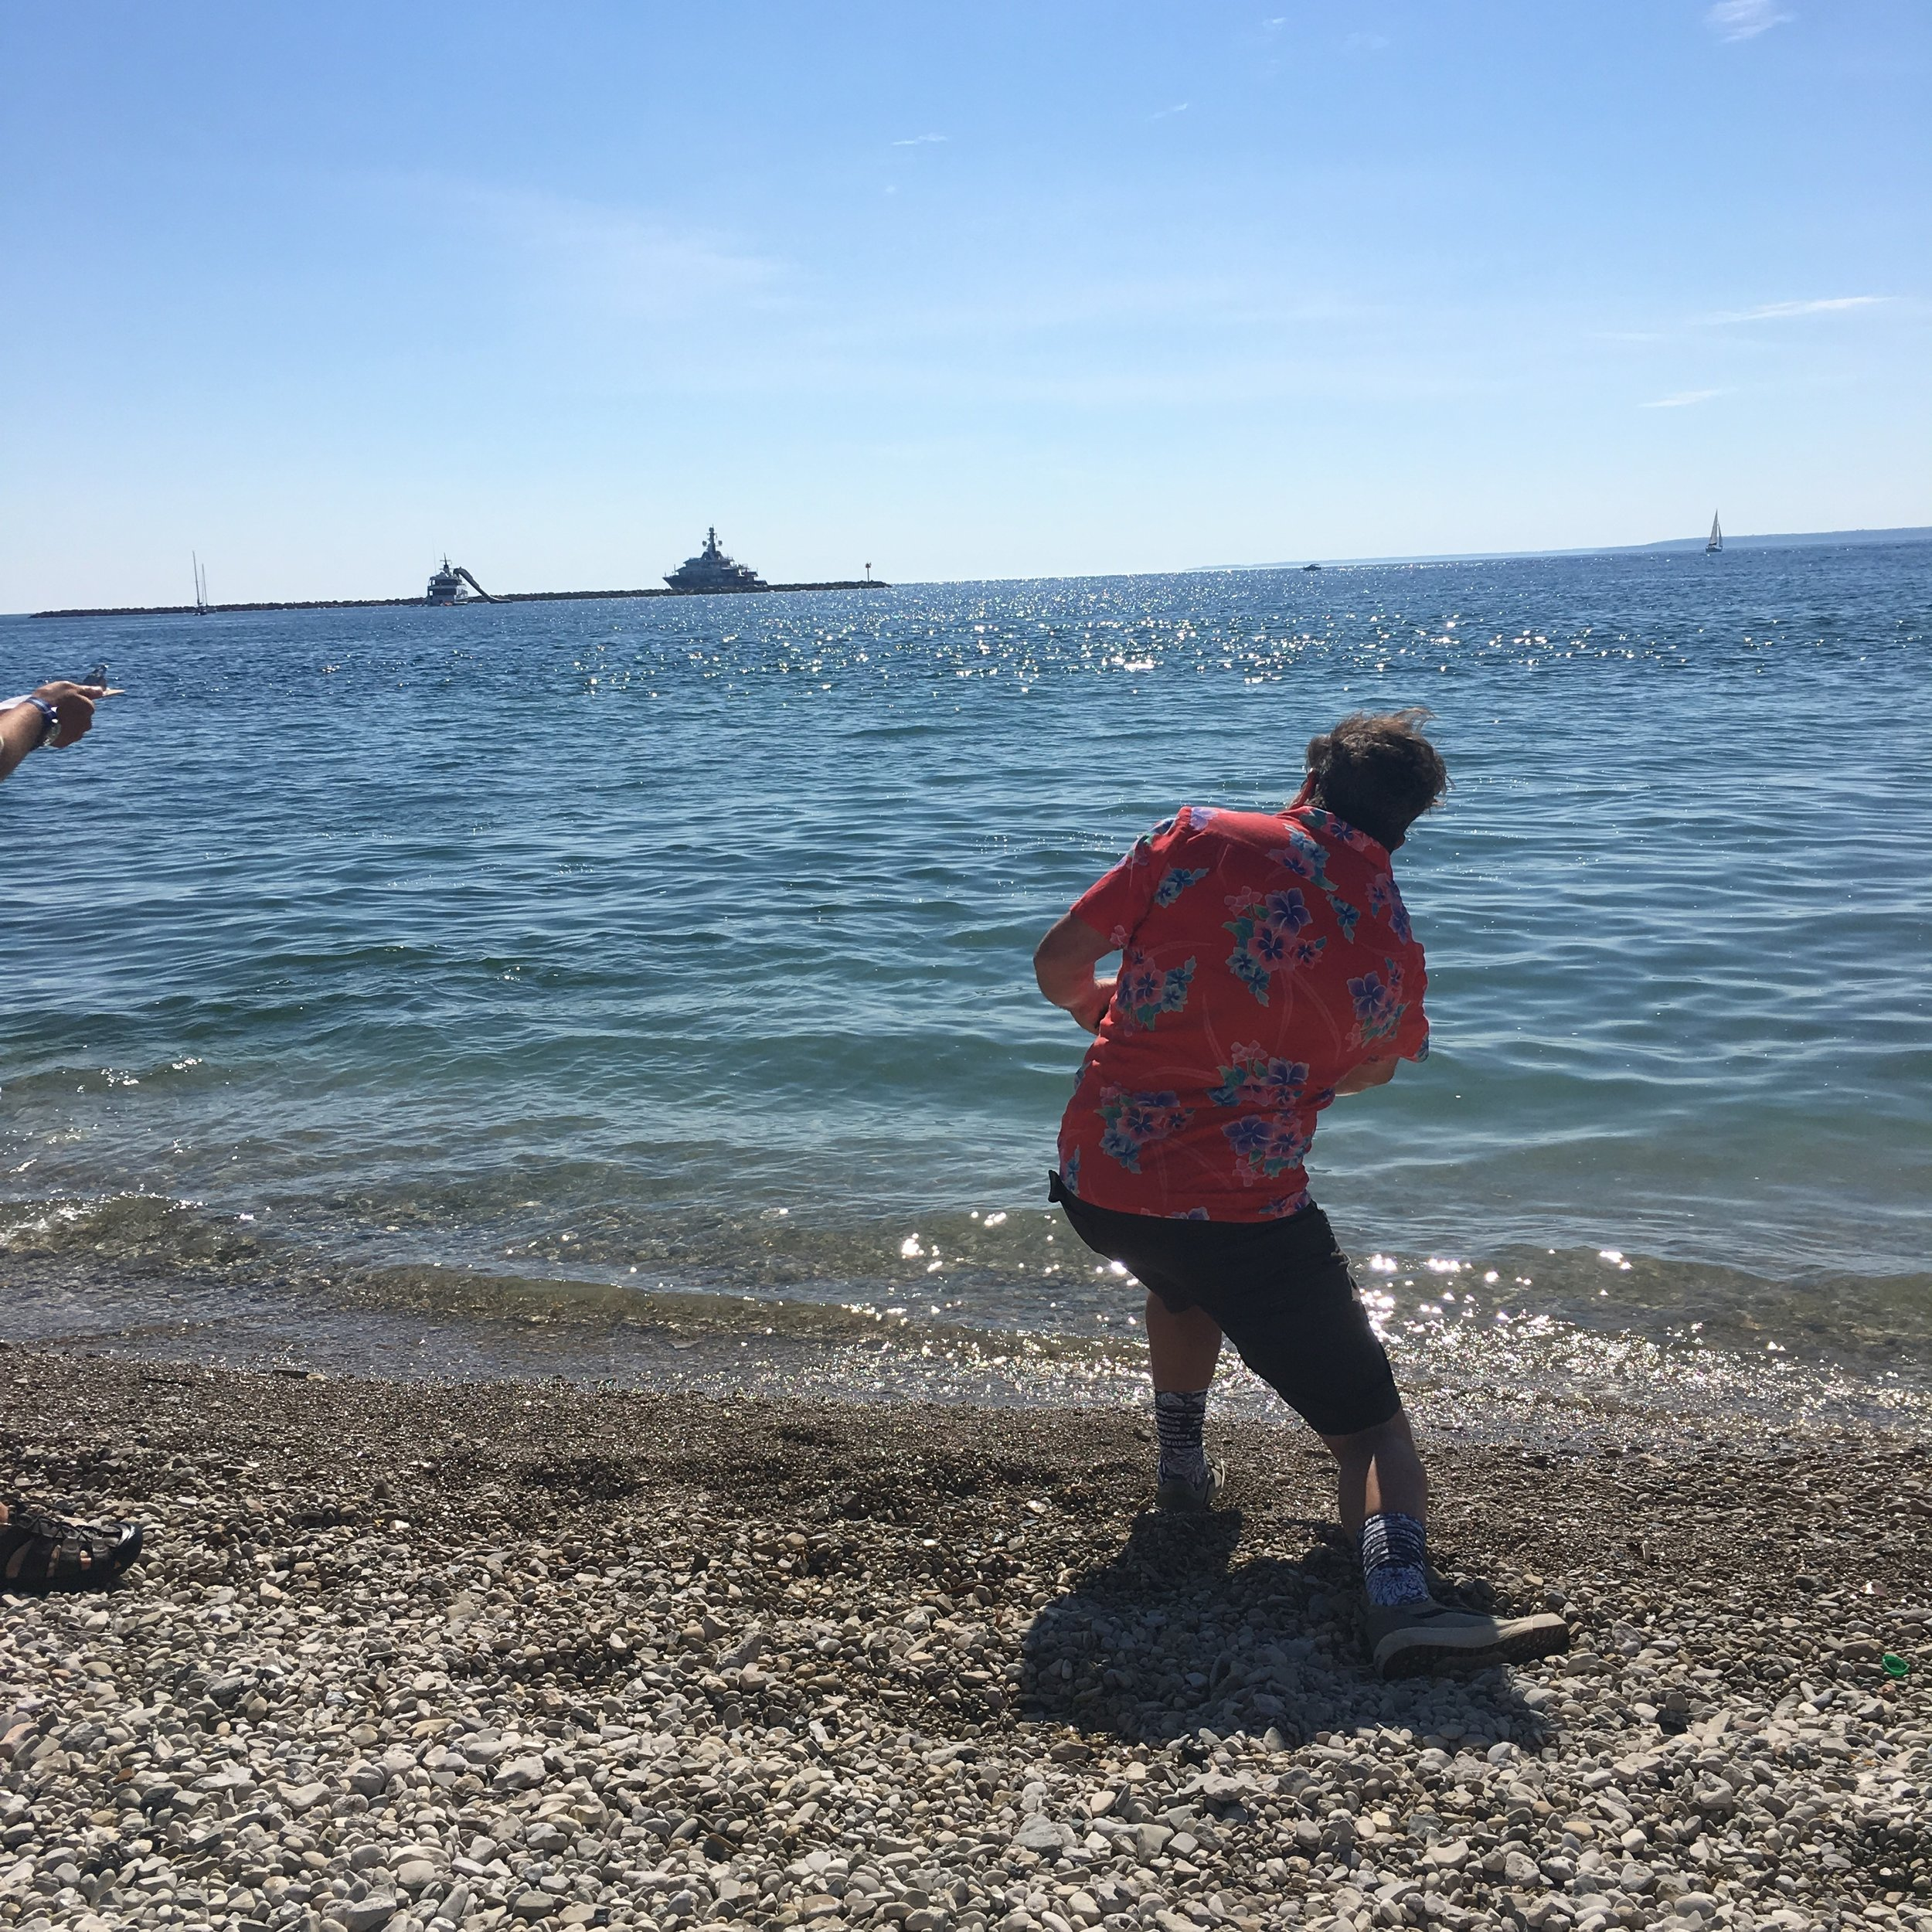 Ted 'Captain from Jaws 3' skipping a stone